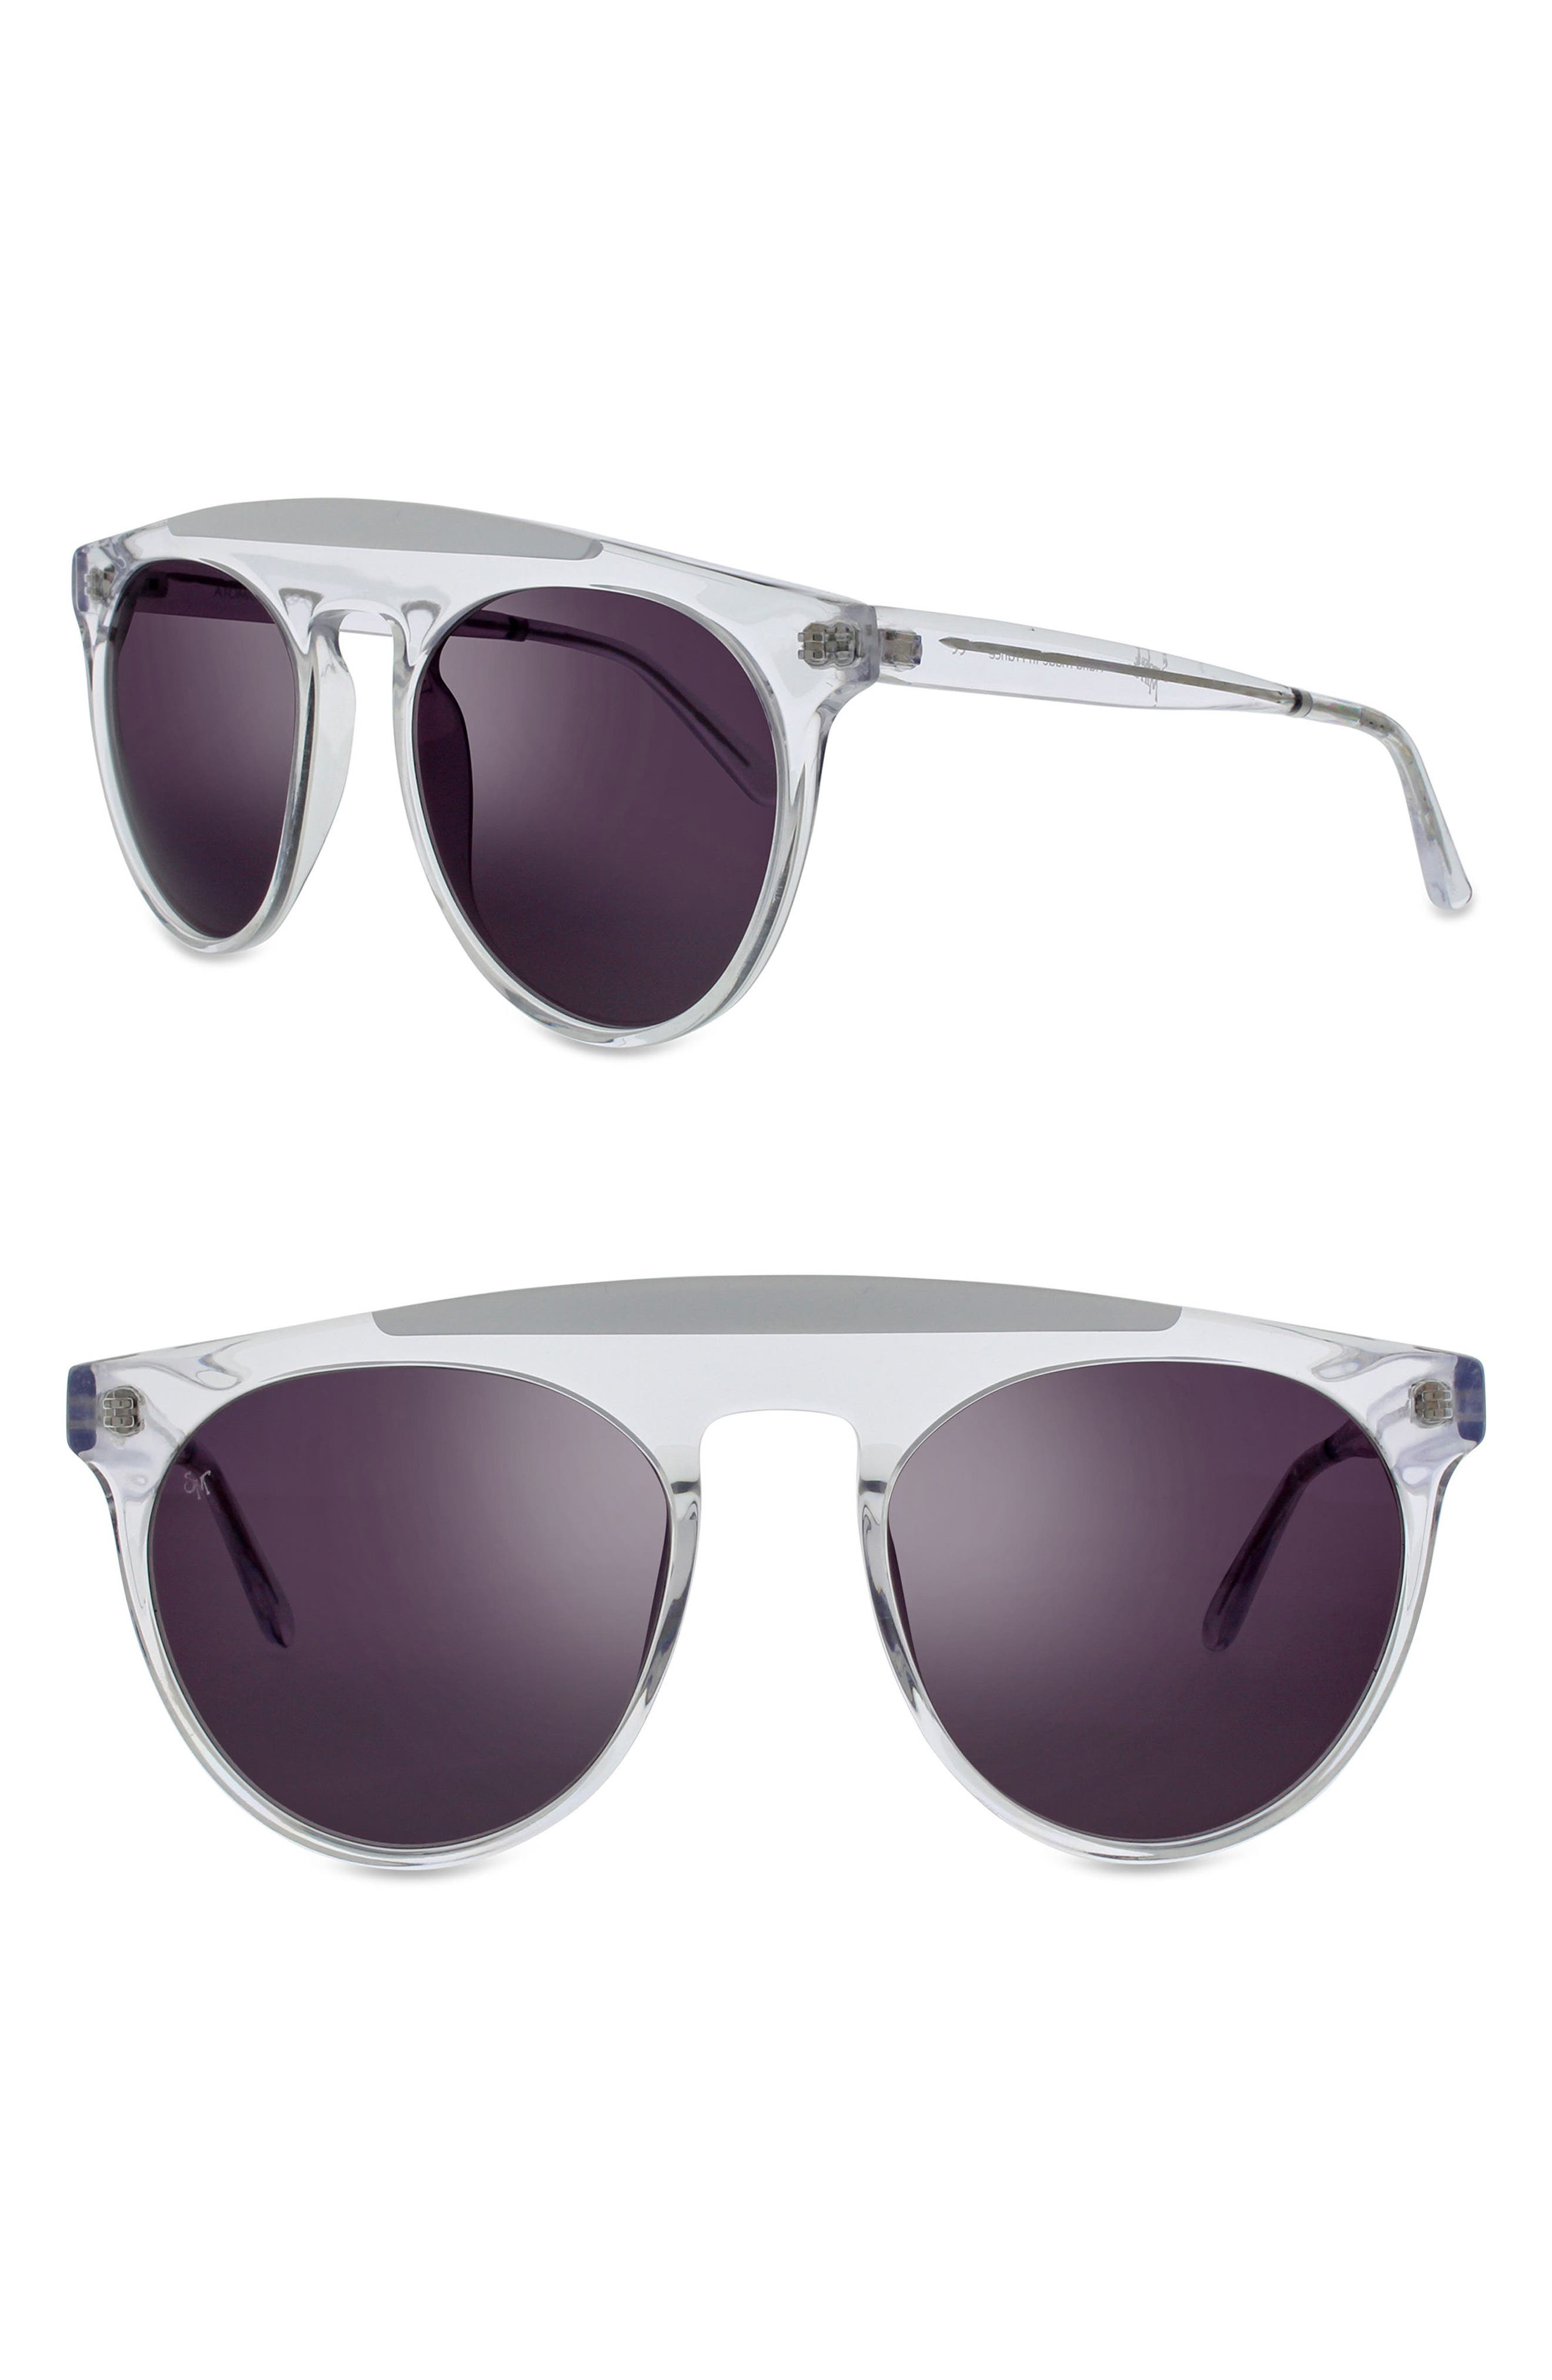 Atomic 52mm Round Sunglasses,                             Main thumbnail 1, color,                             Crystal/ White